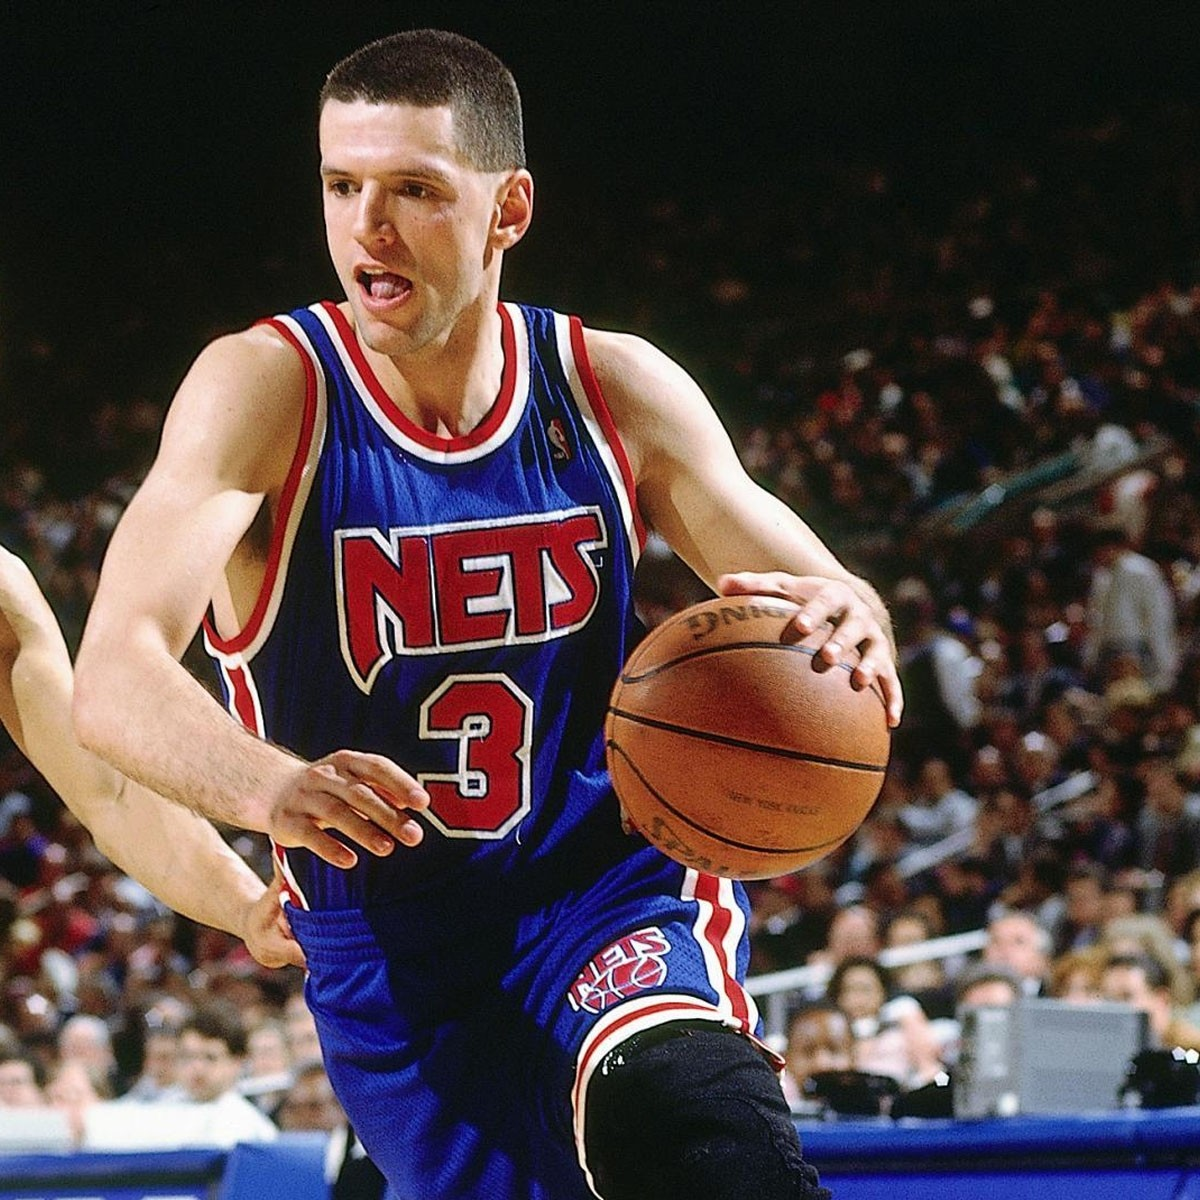 Mitchell & Ness Petrovic Swingman Jersey Away 'Nets' SMJYGS18183